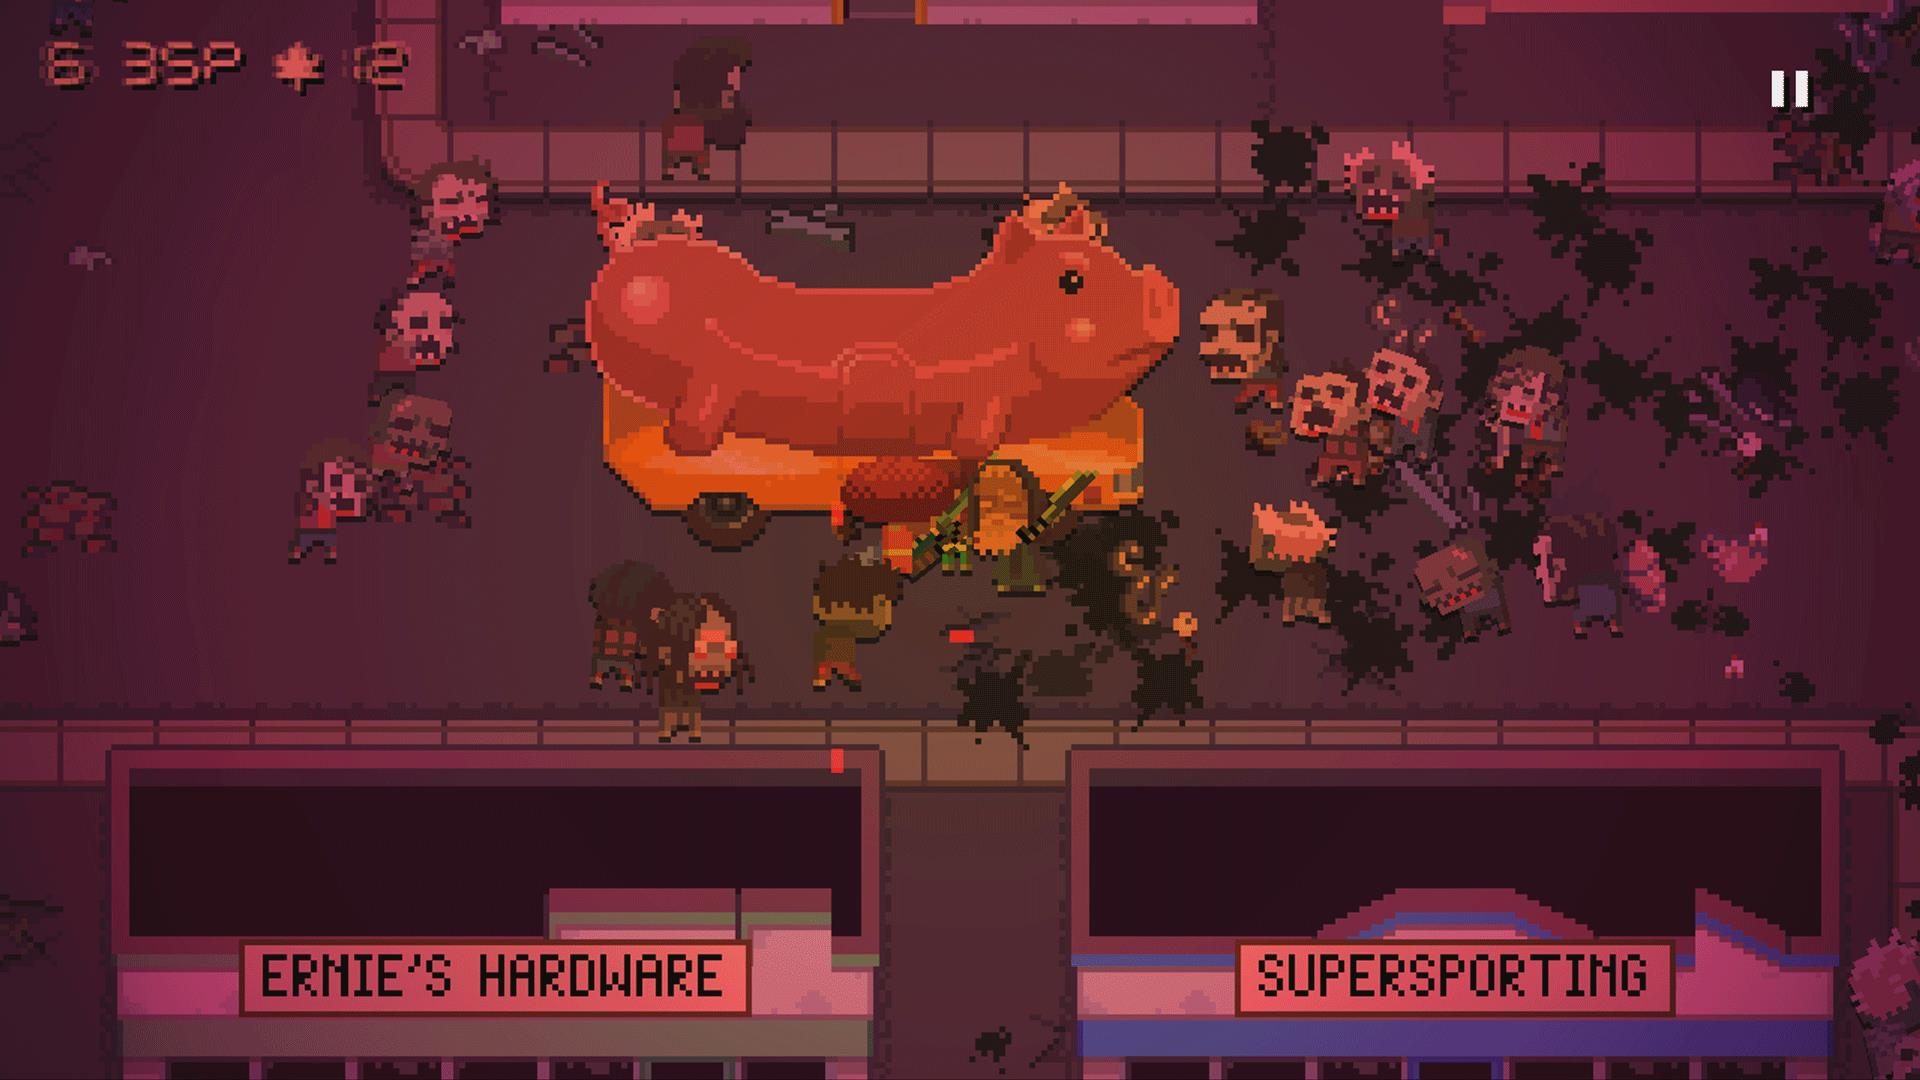 Death Road to Canada's console ports are now on for a May 8 release screenshot